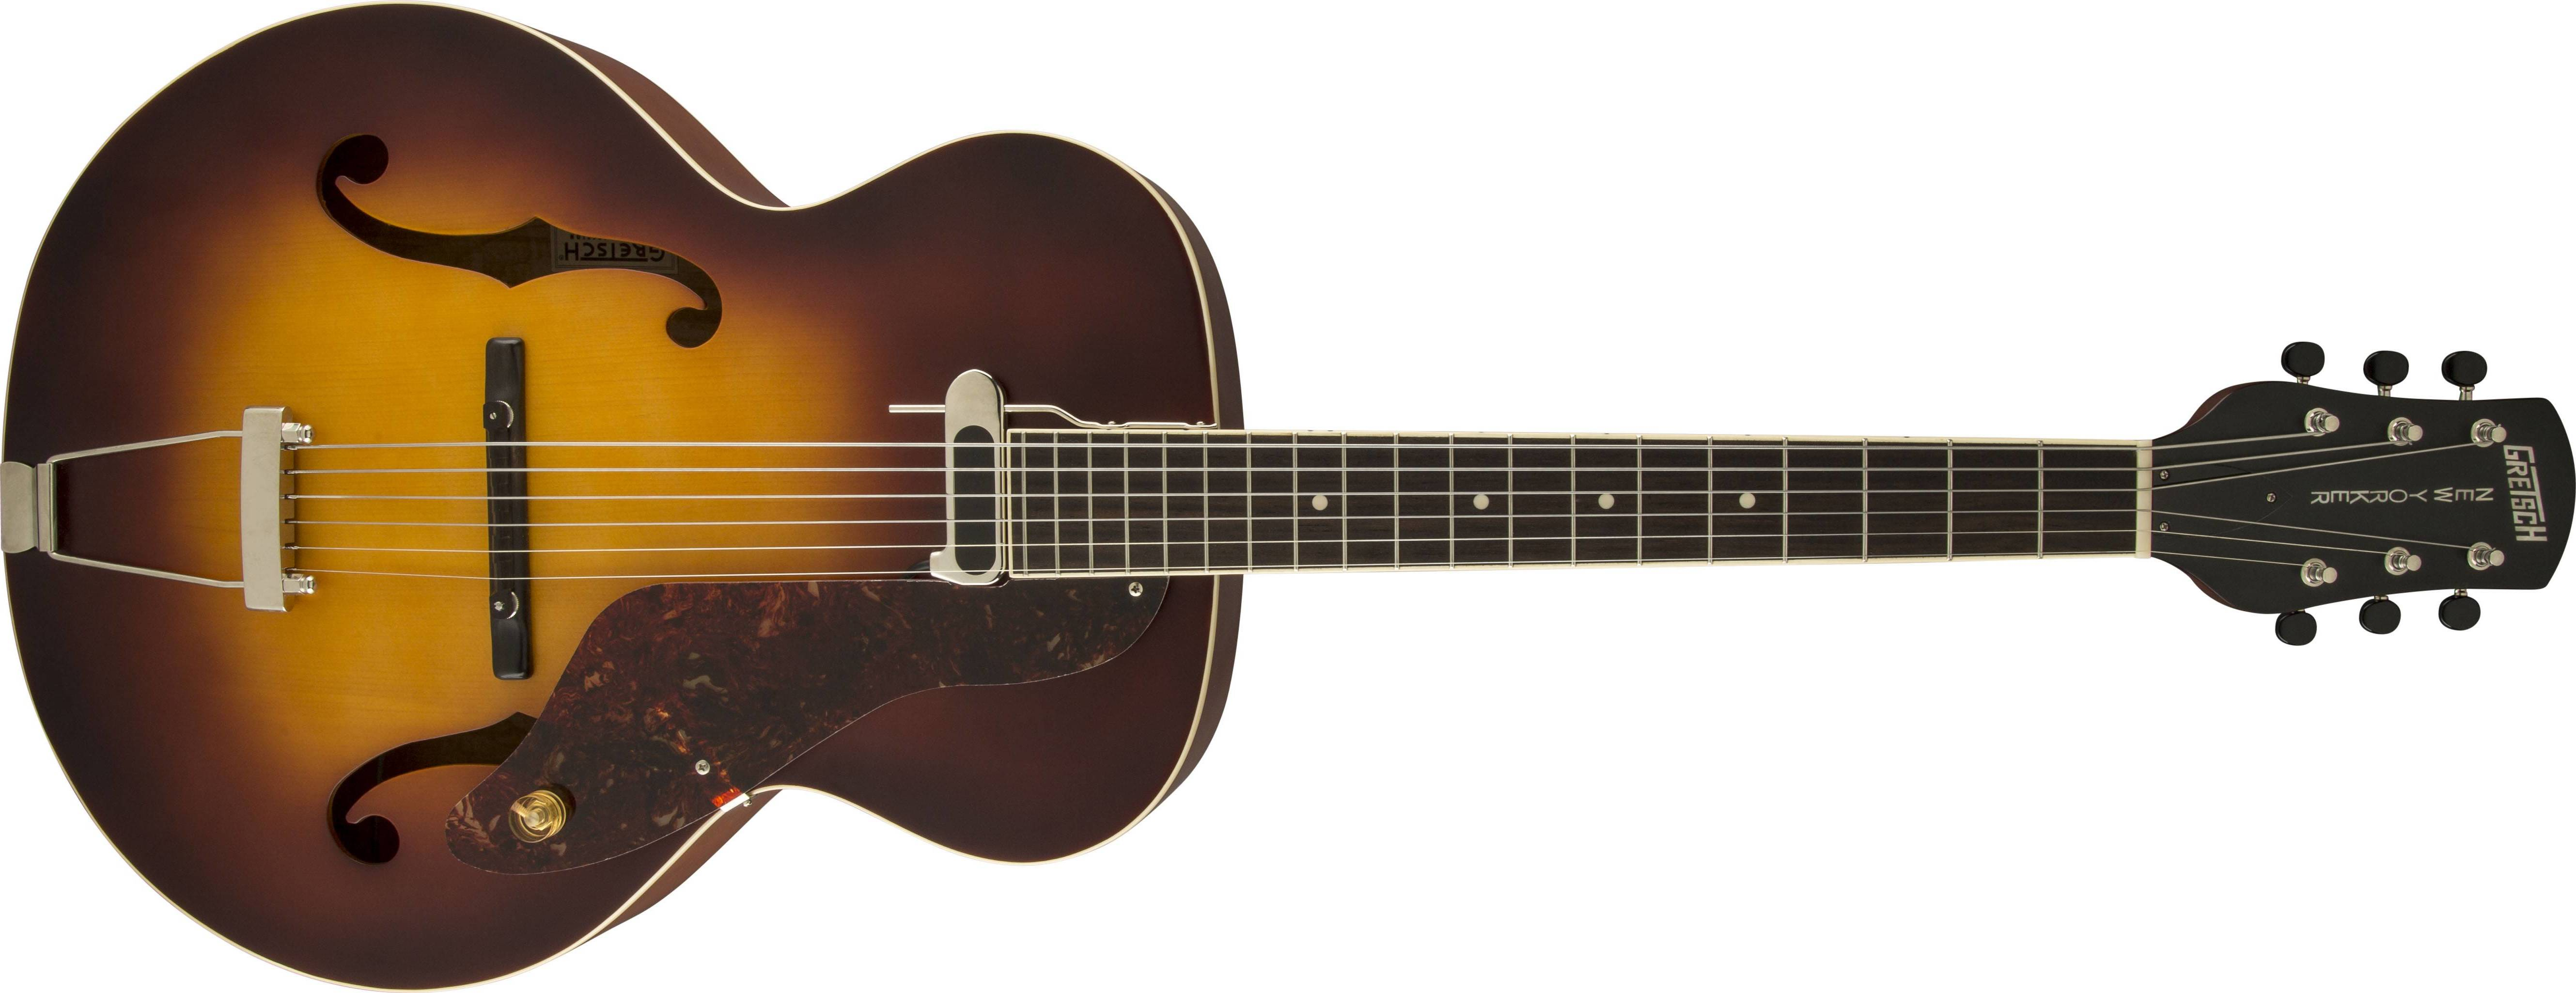 aa9f459bea673 Gretsch Guitars G9555 New Yorker Archtop With Pickup - Long & McQuade  Musical Instruments